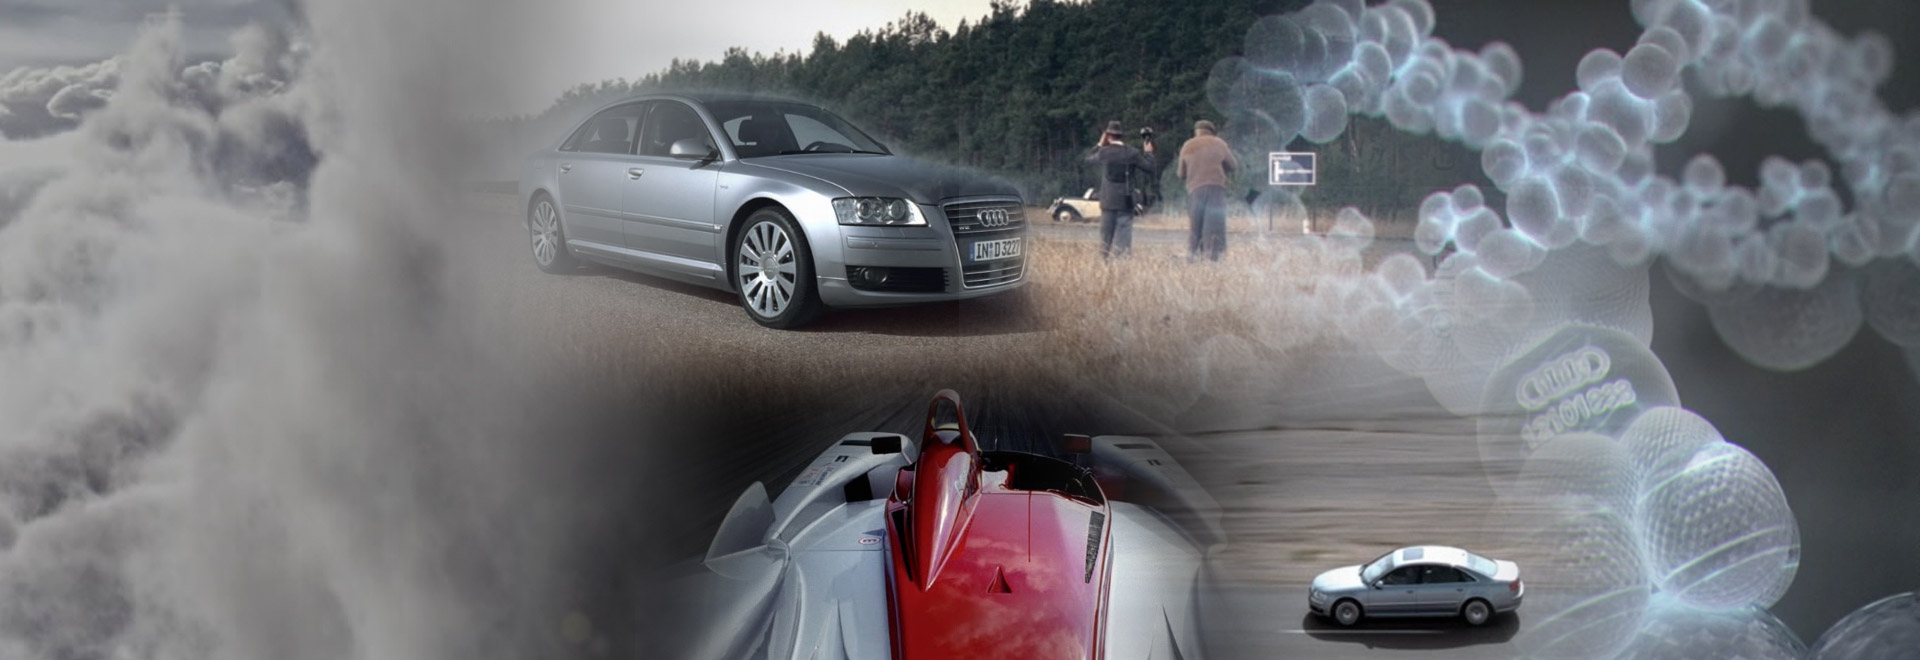 js-filmproduction-postproduction-commercial-audi-vorsprung-header